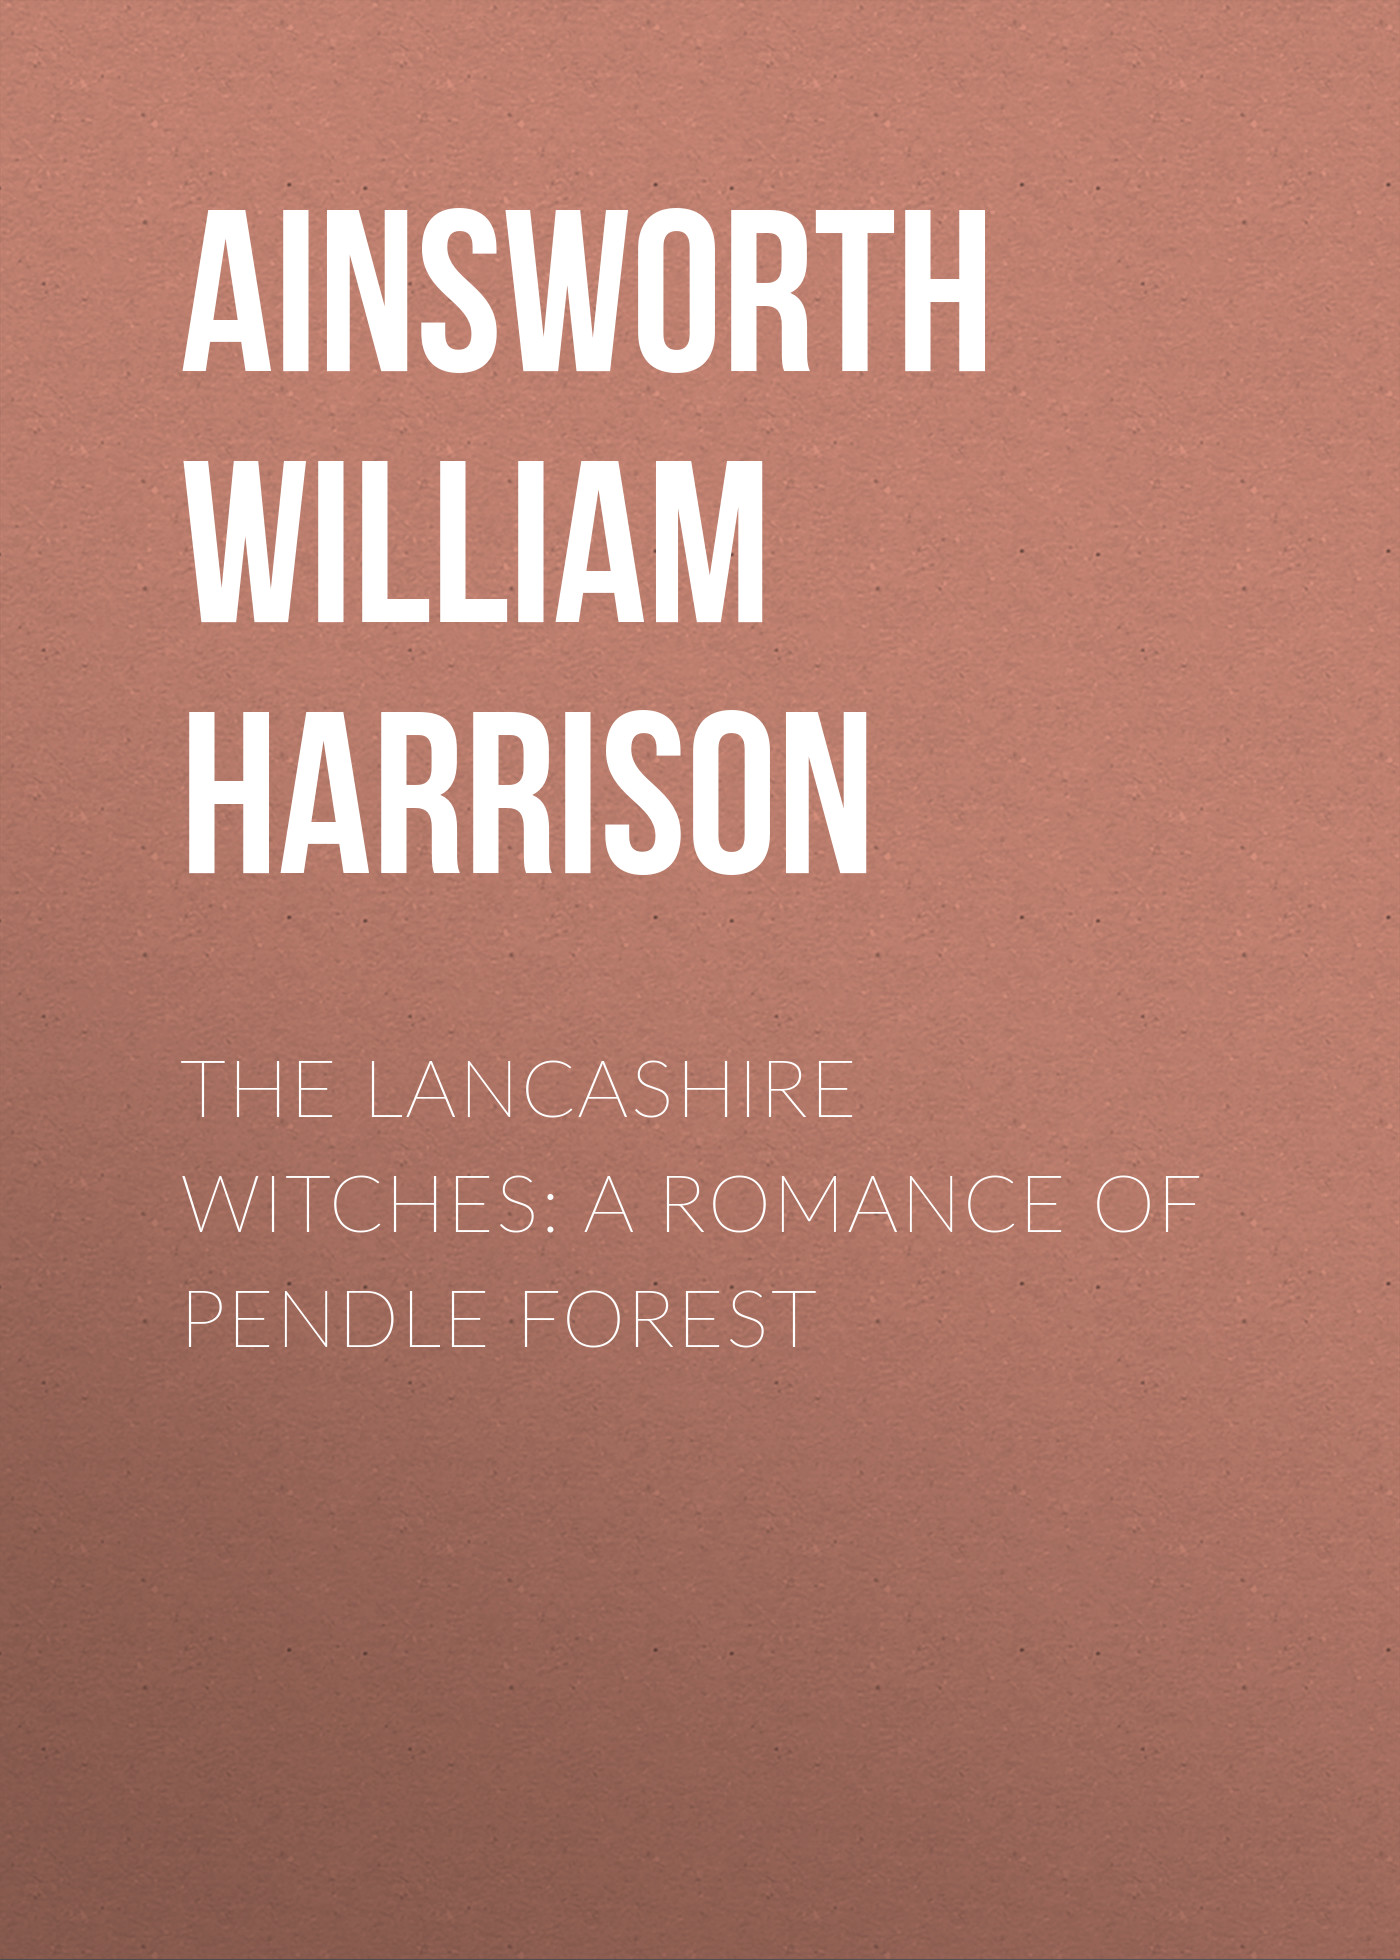 Ainsworth William Harrison The Lancashire Witches: A Romance of Pendle Forest ainsworth william harrison windsor castle